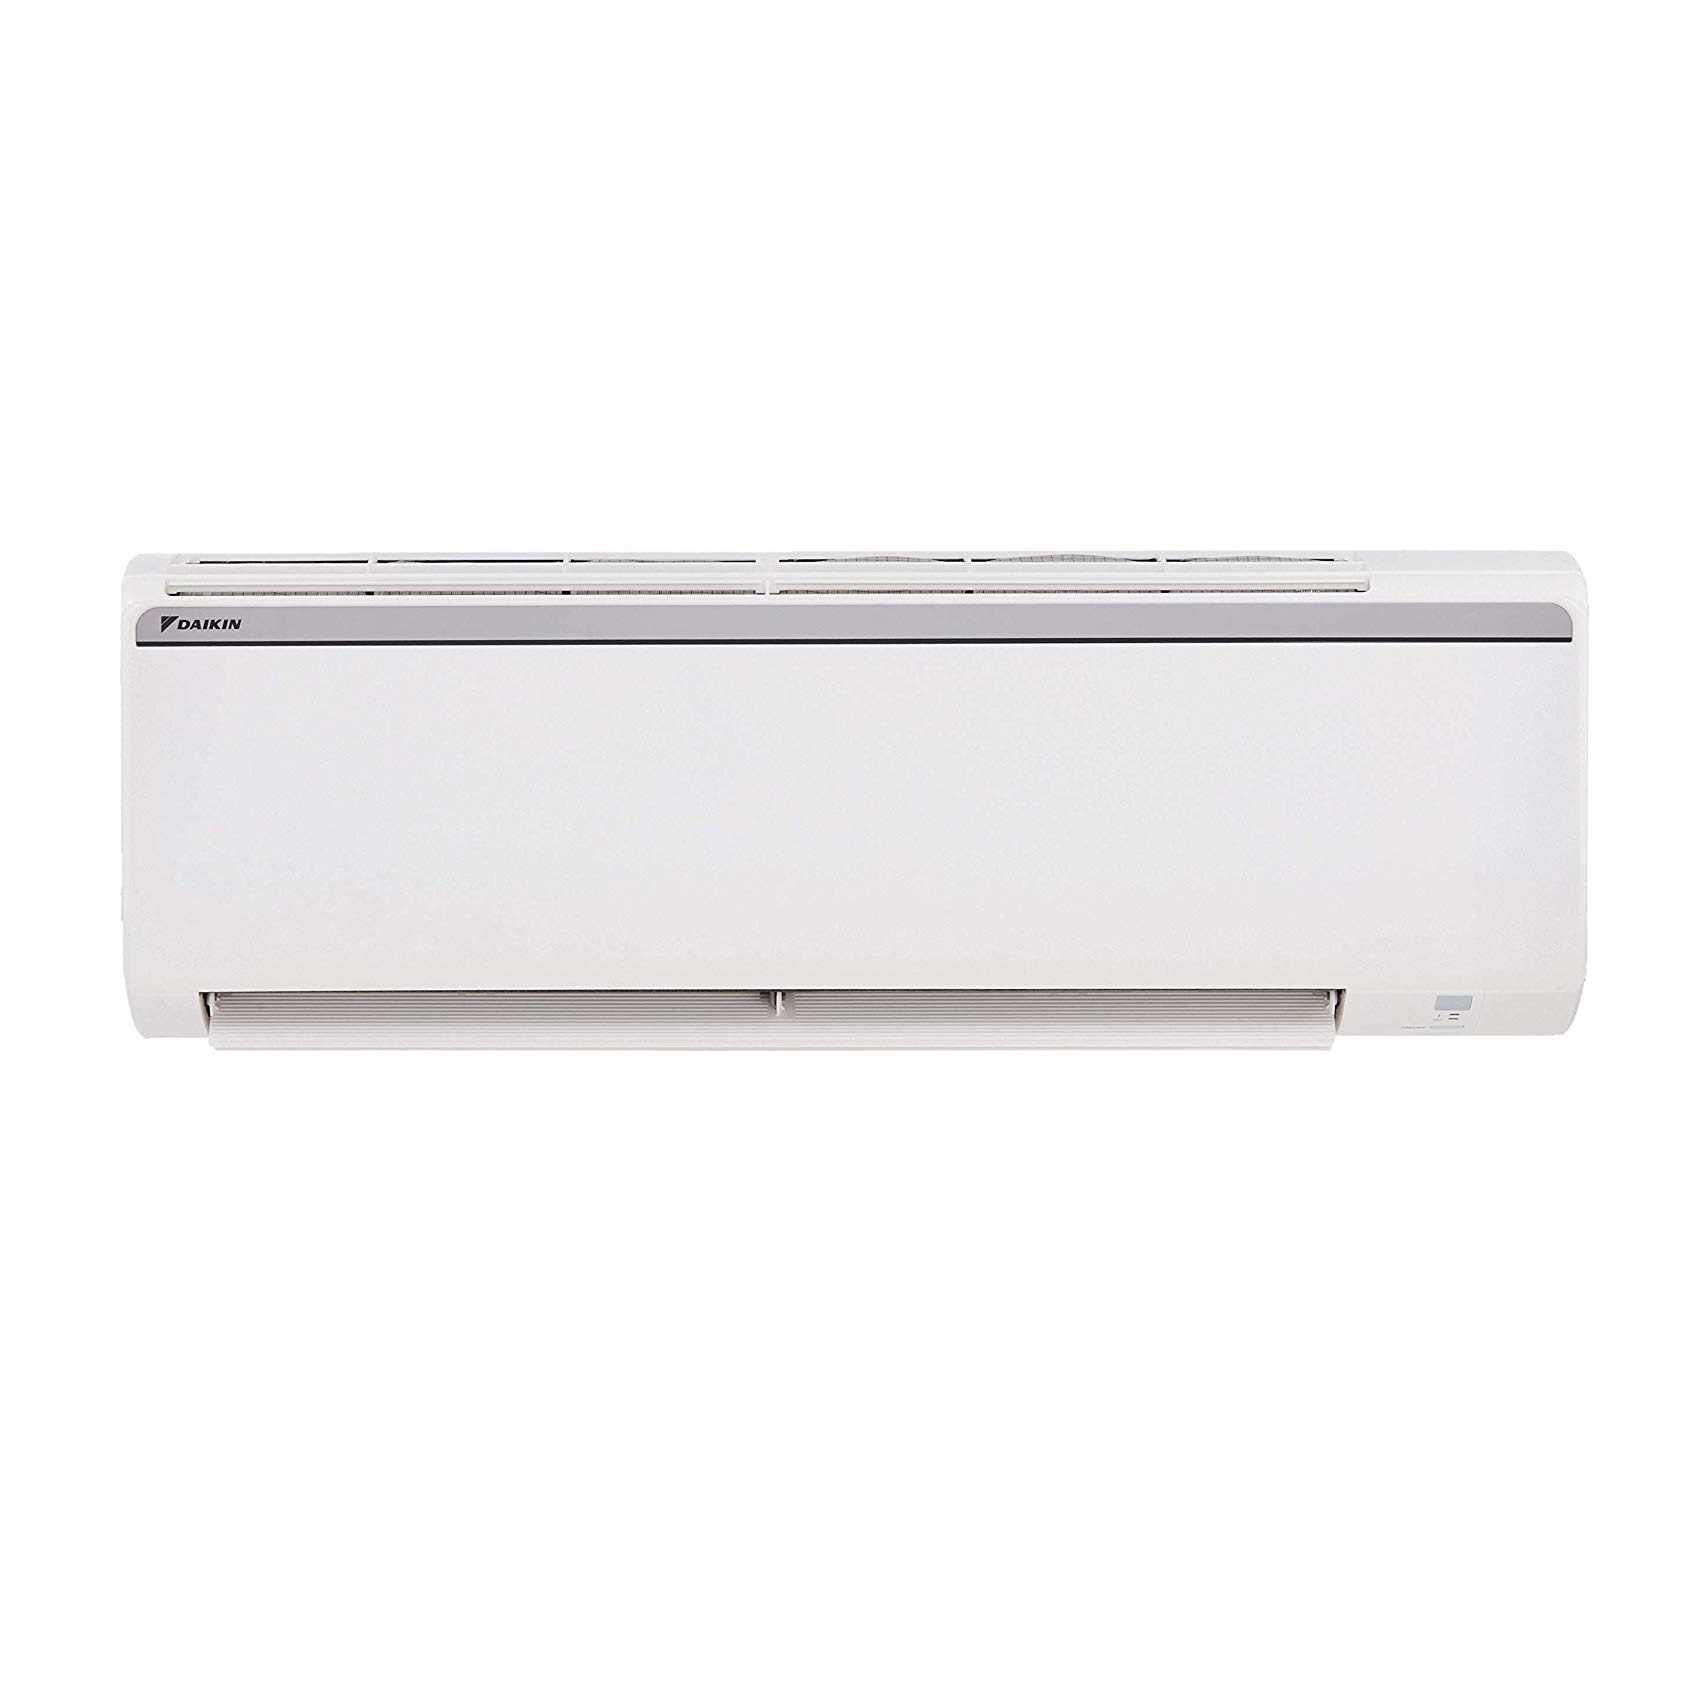 d5489d652 Daikin FTL60TV16U5 1.8 Ton 3 Star Split AC Price  29 May 2019 ...